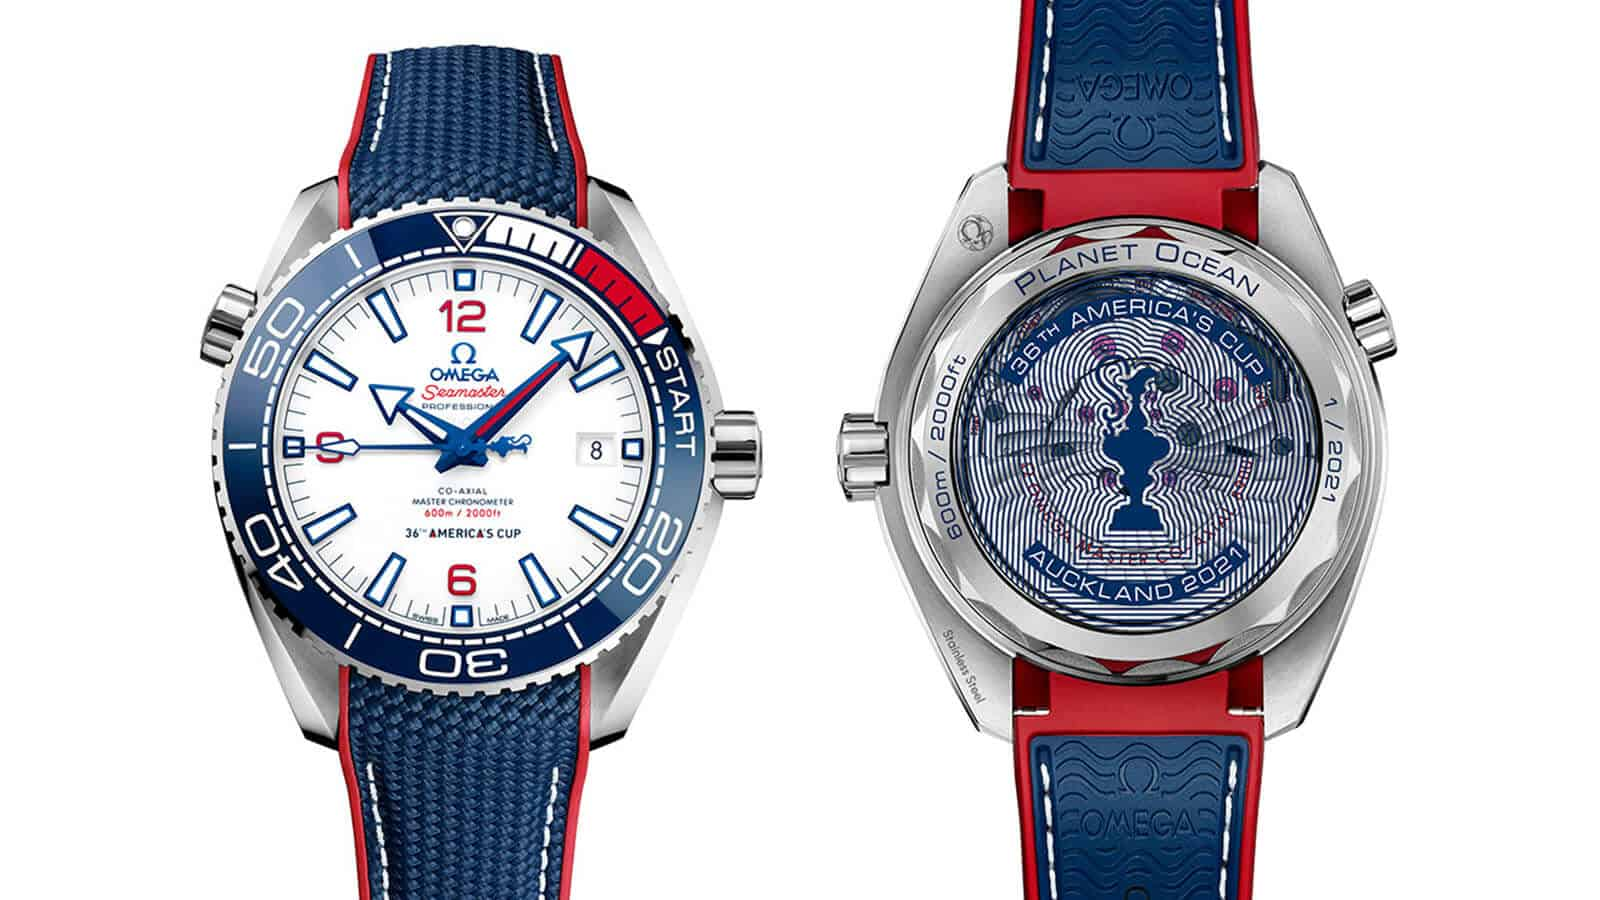 OMEGA Seamaster Planet Ocean 36th-America´s-Cup Limited Edition